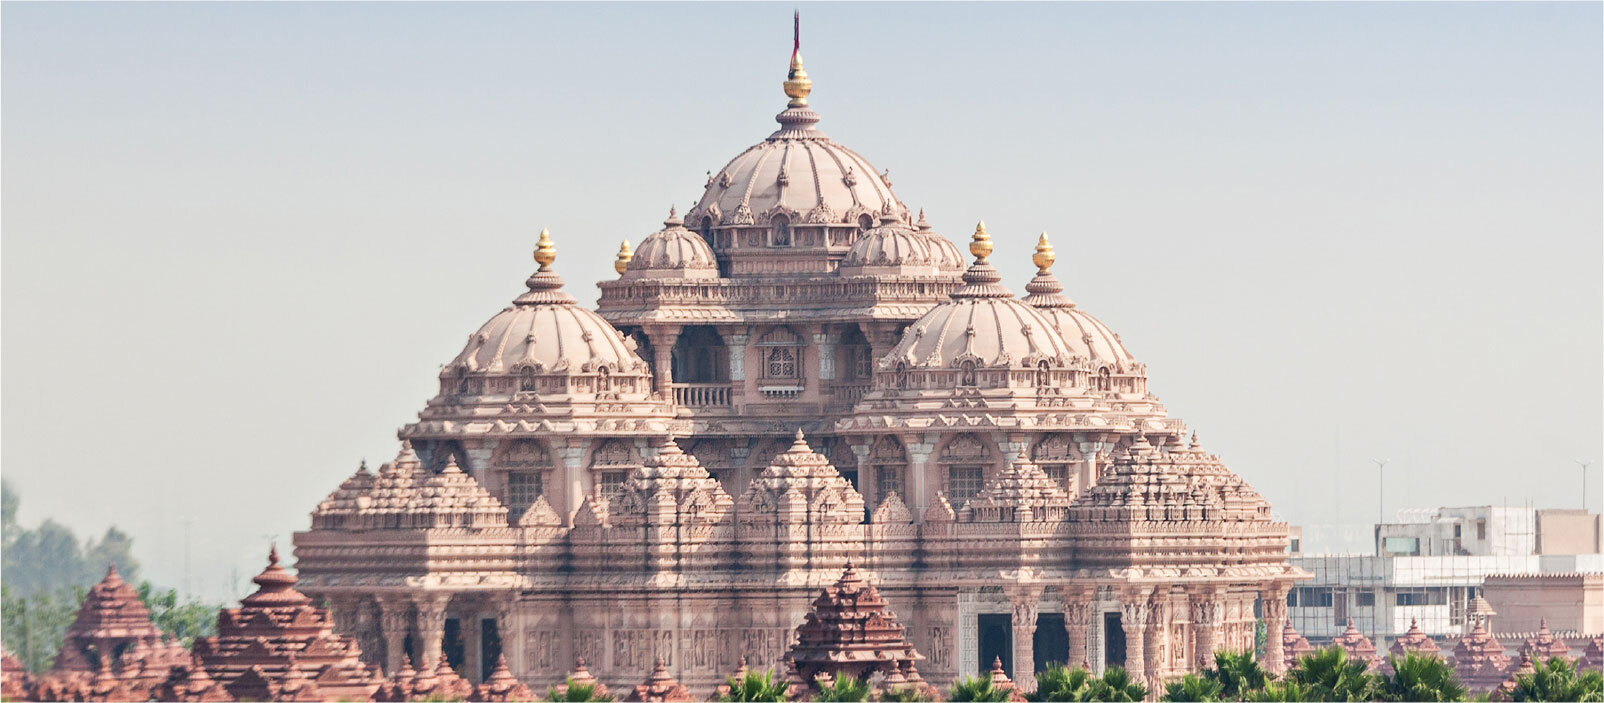 ARCHITECTURE IN AHMEDABAD -